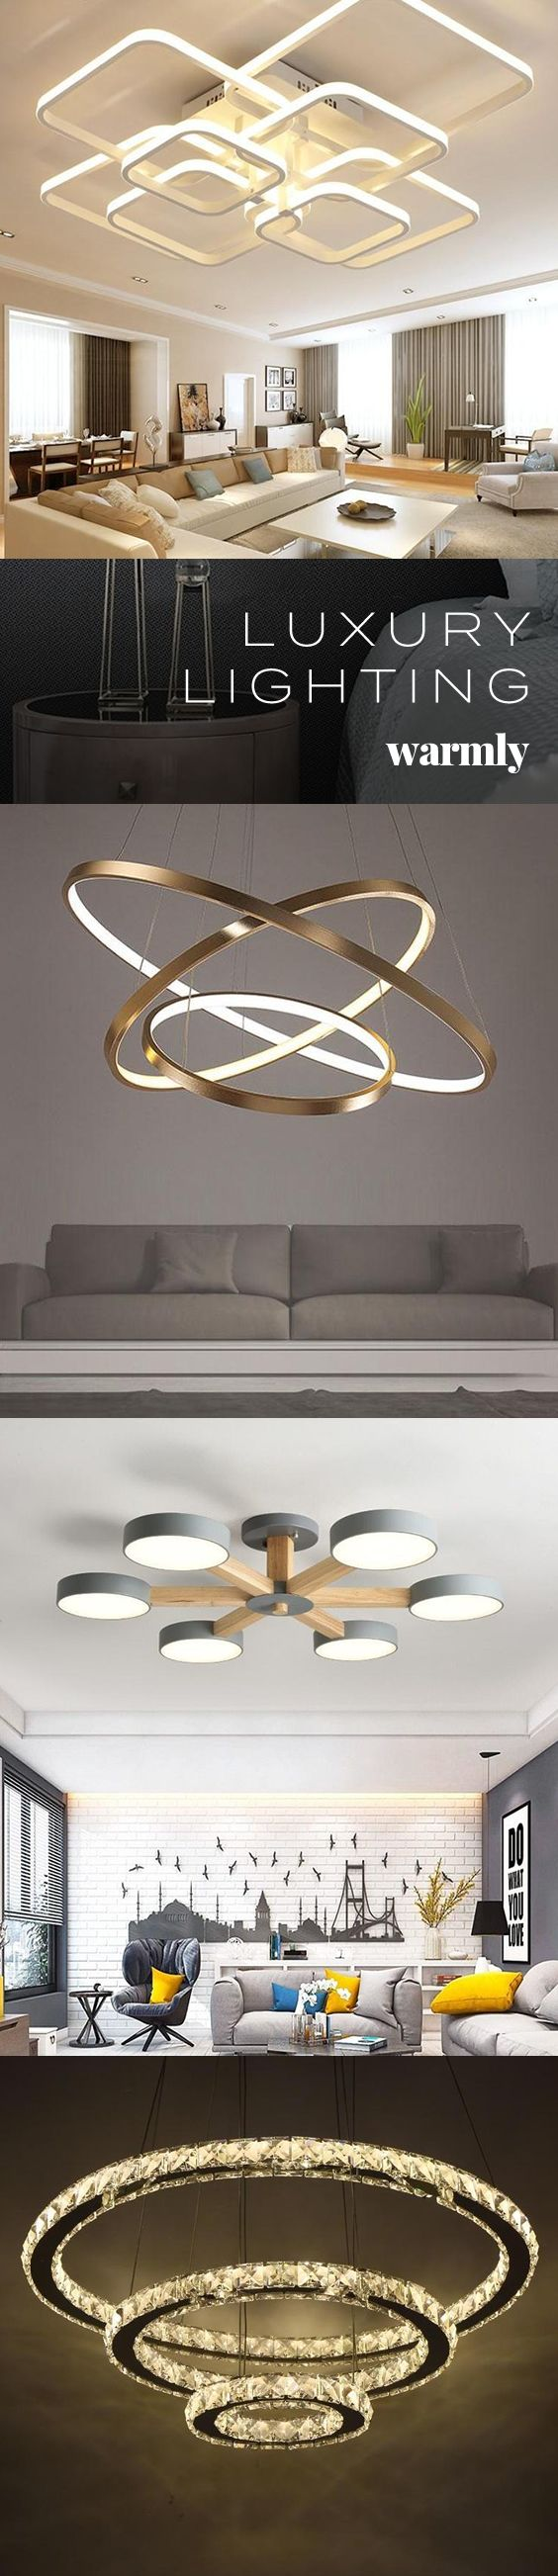 Modern Luxury Lighting at 50% Off (or more)